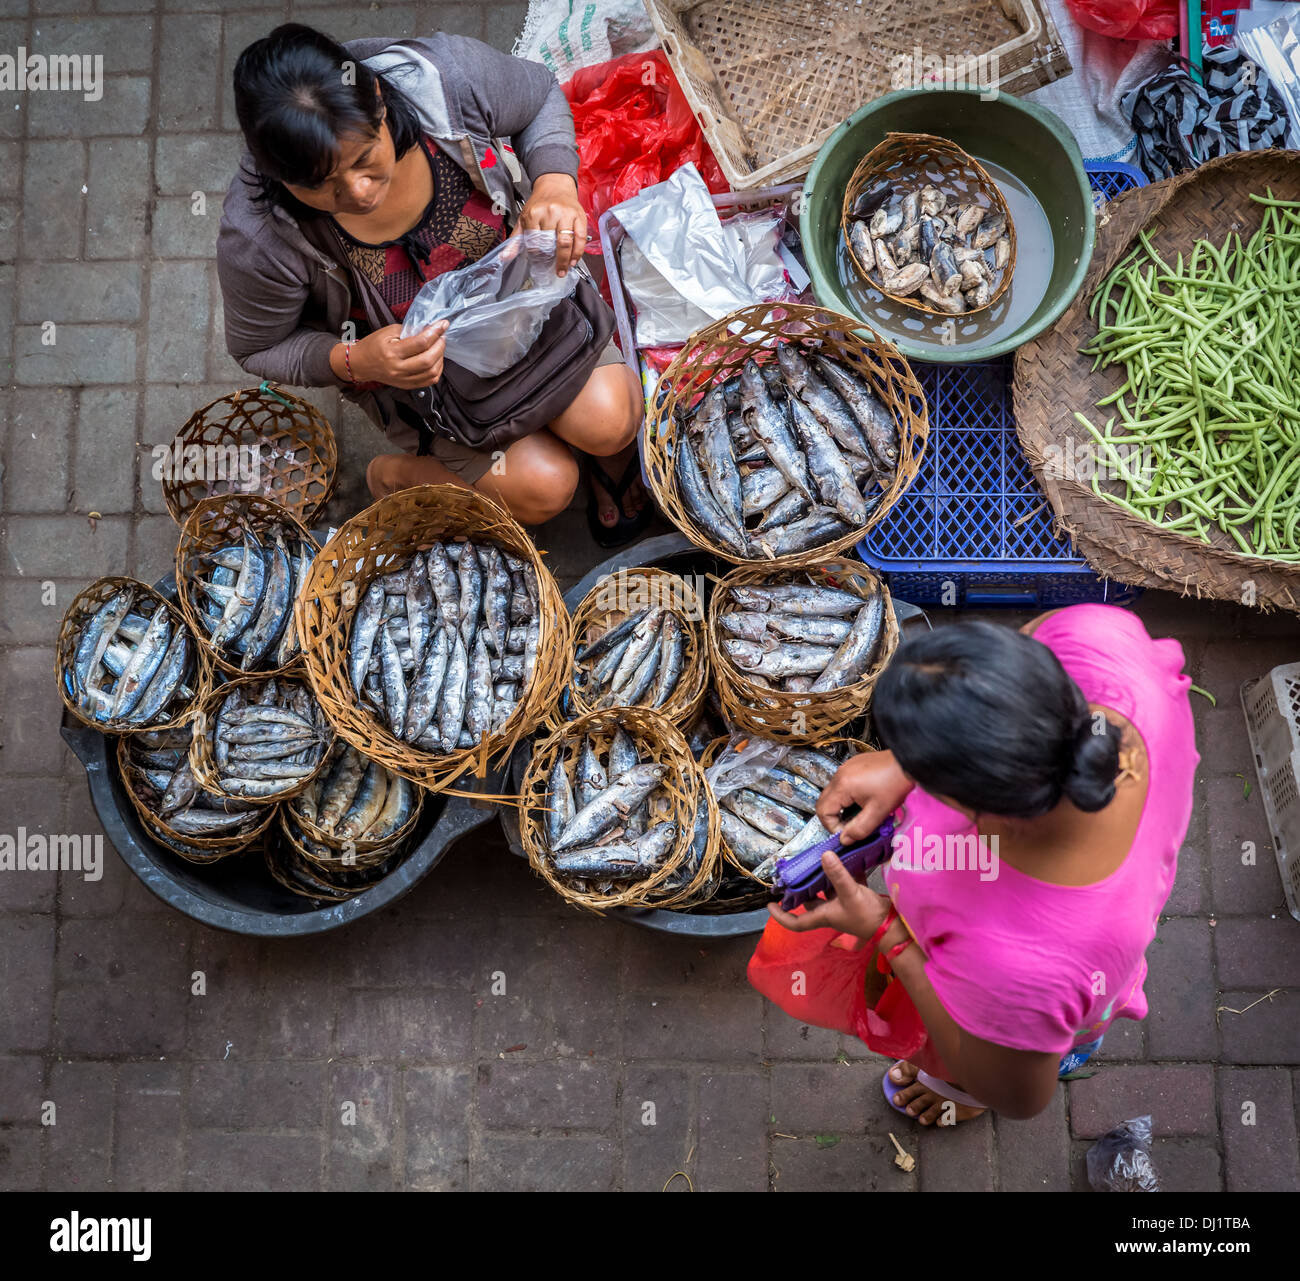 Woman selling fish at the local market in Ubud, Bali, Indonesia - Stock Image